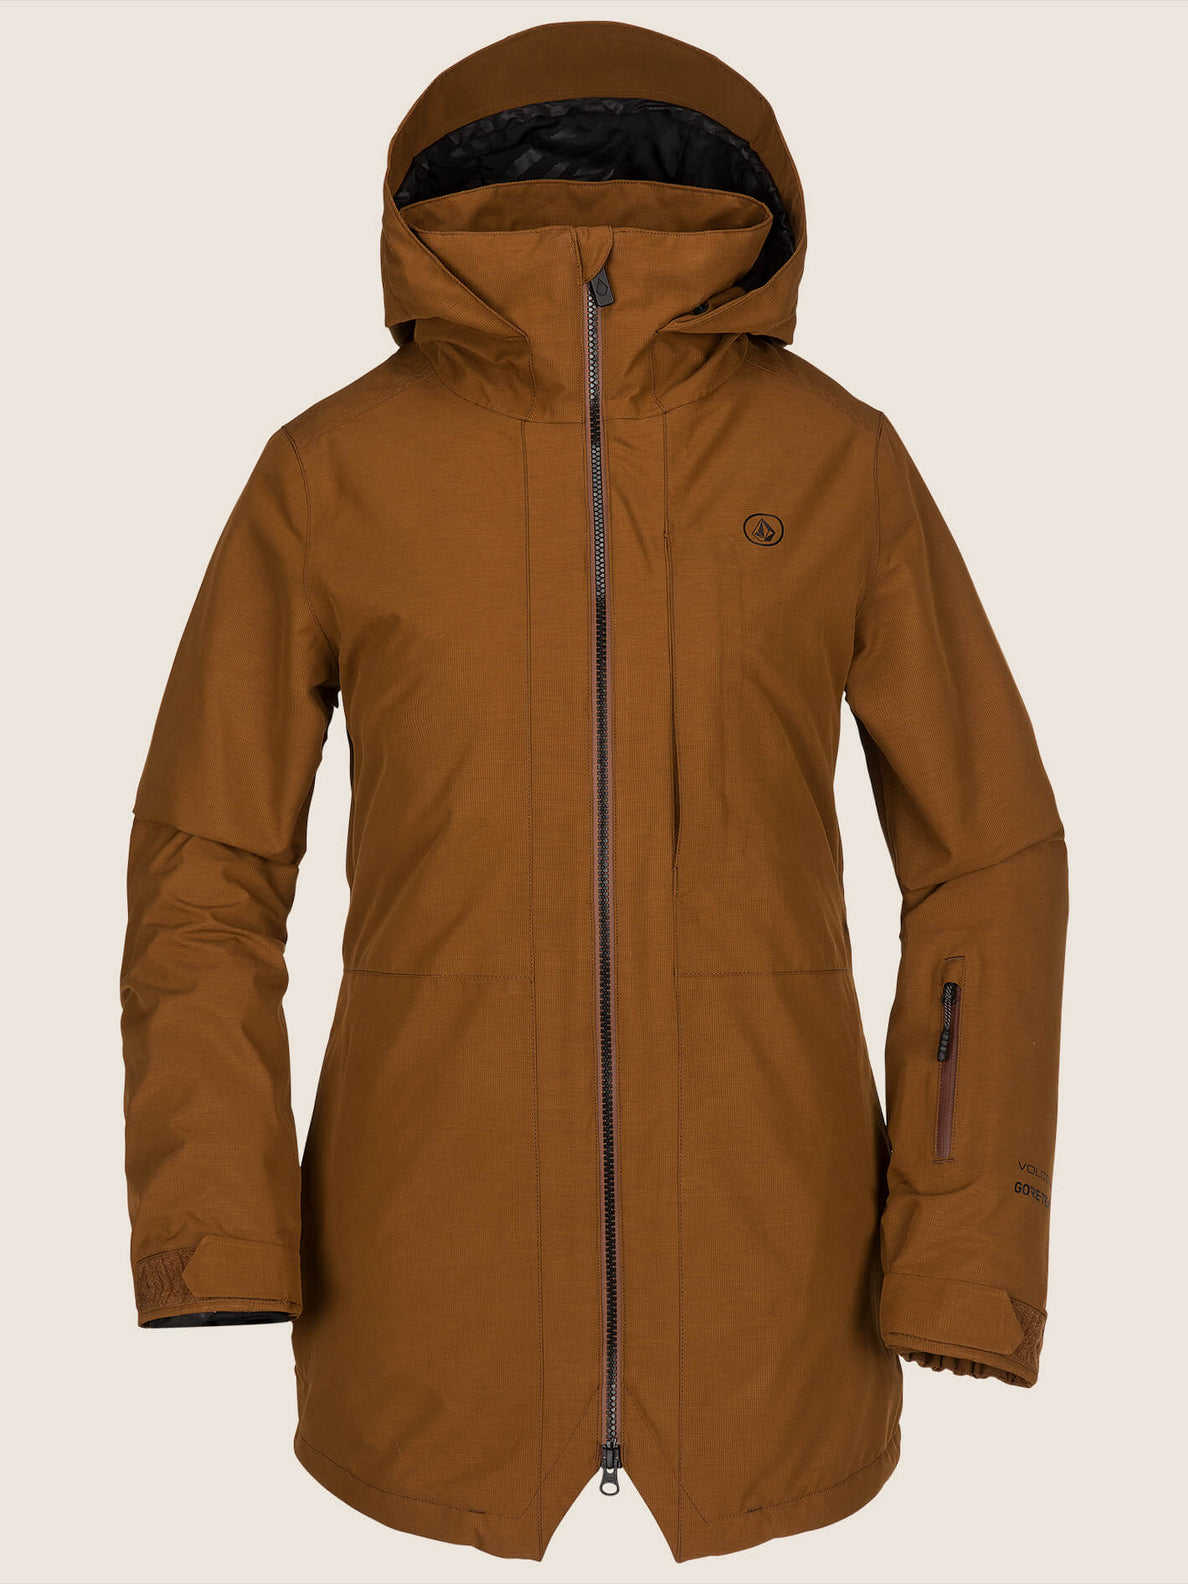 Iris 3-In-1 Gore-tex Jacket In Copper, Front View